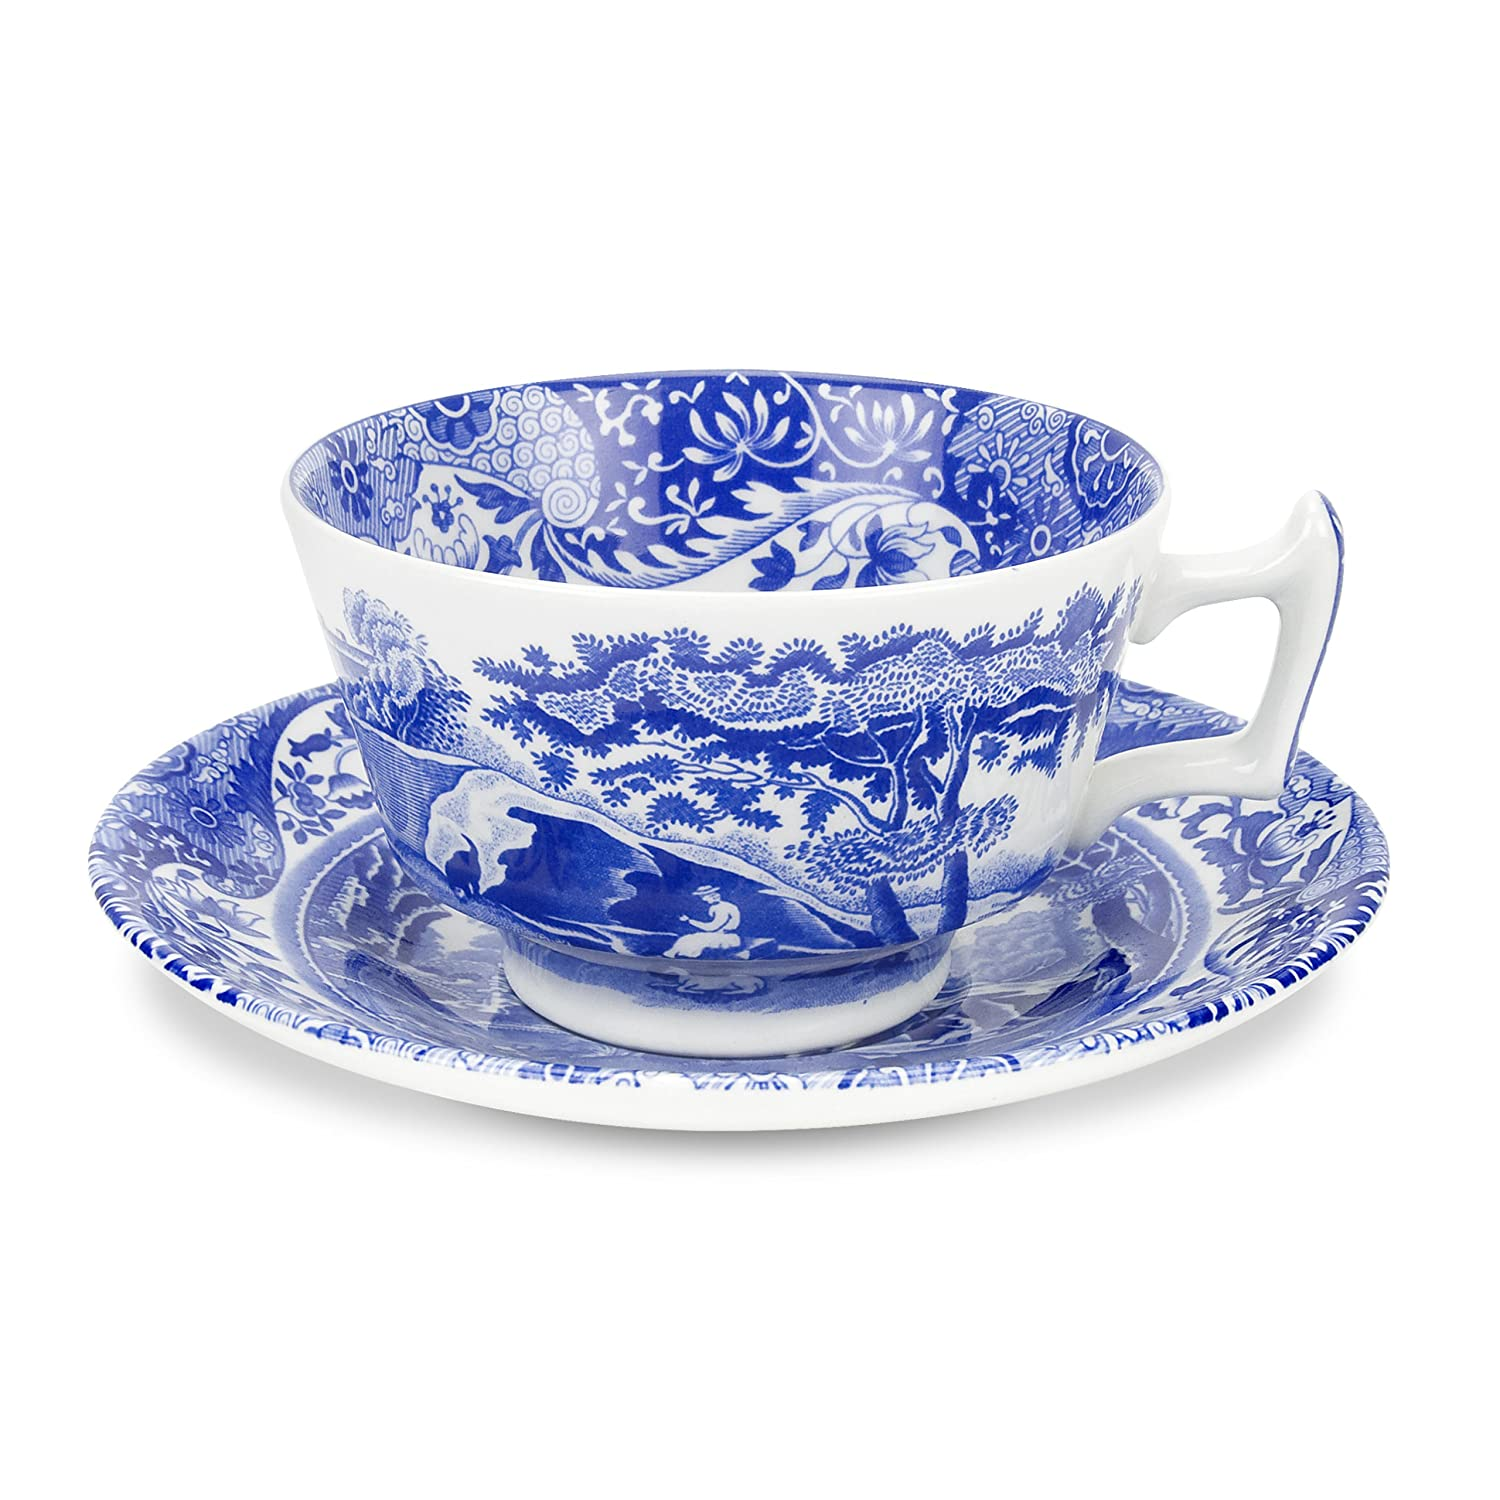 Spode Blue Italian Teacup and Saucer, Set of 4 1532504